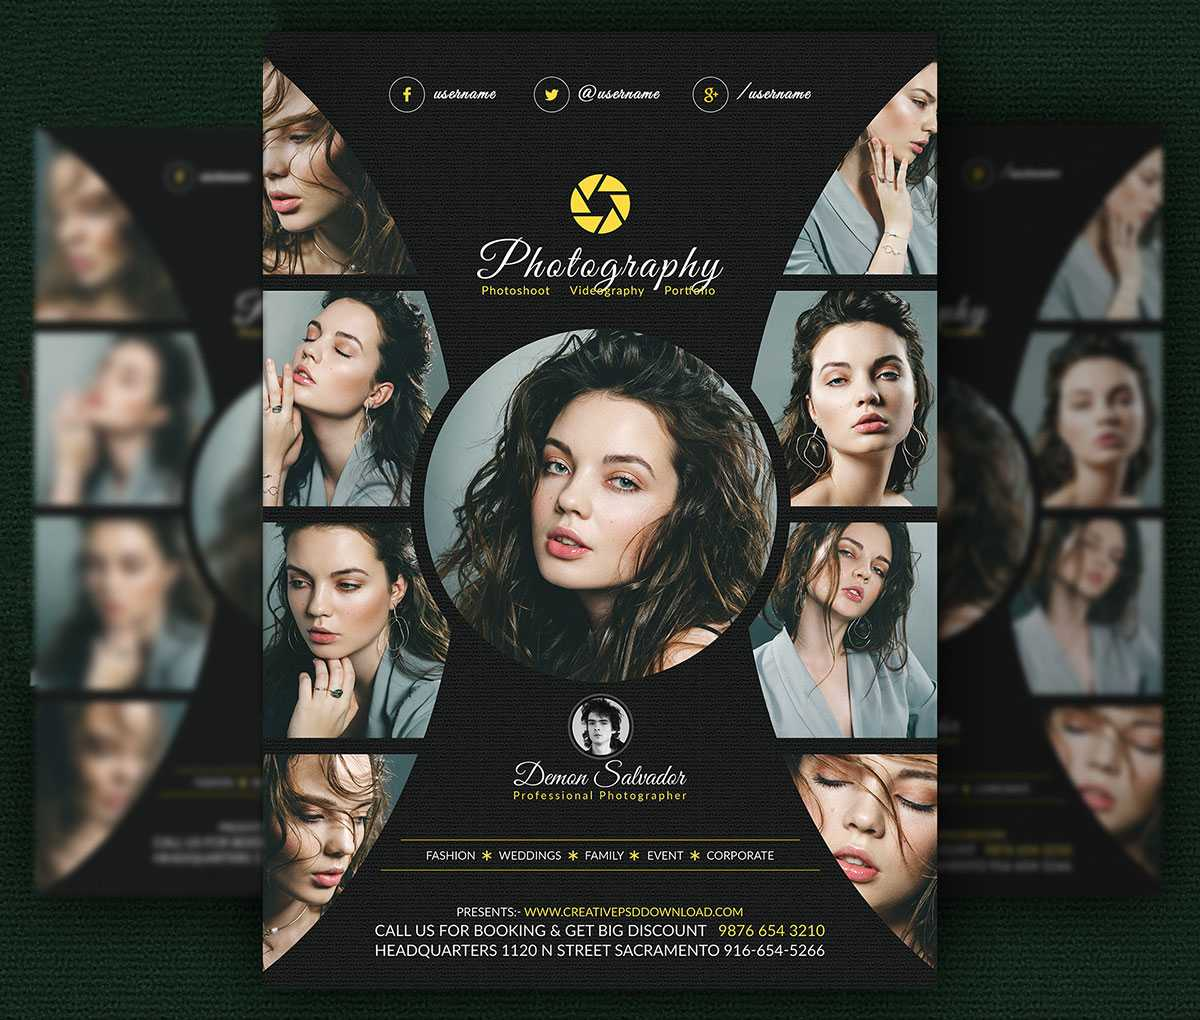 Free Photography Flyer Psd Template - Creativetacos With Regard To Free Photography Flyer Templates Psd